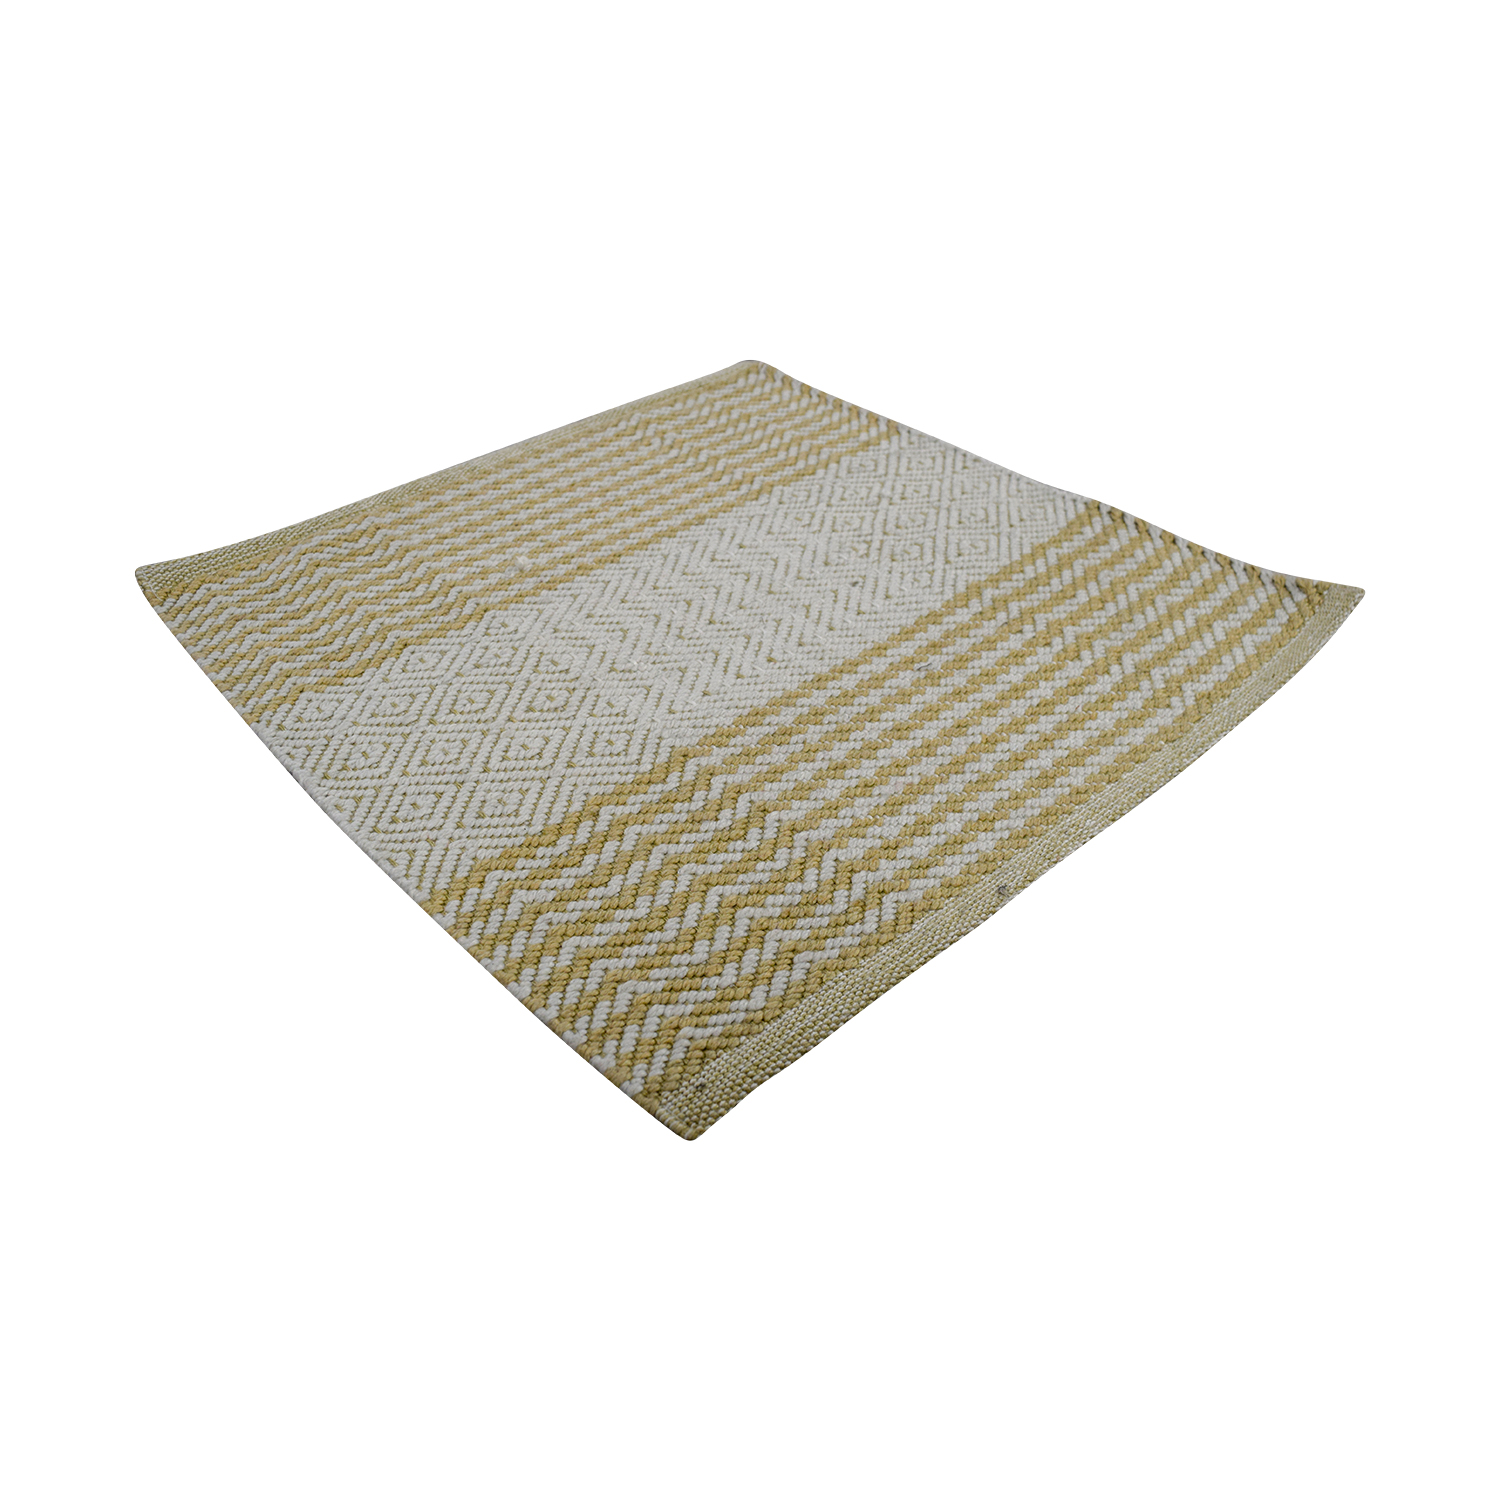 Obeetee Obeetee 2x2 Cream and Beige Rug Rugs